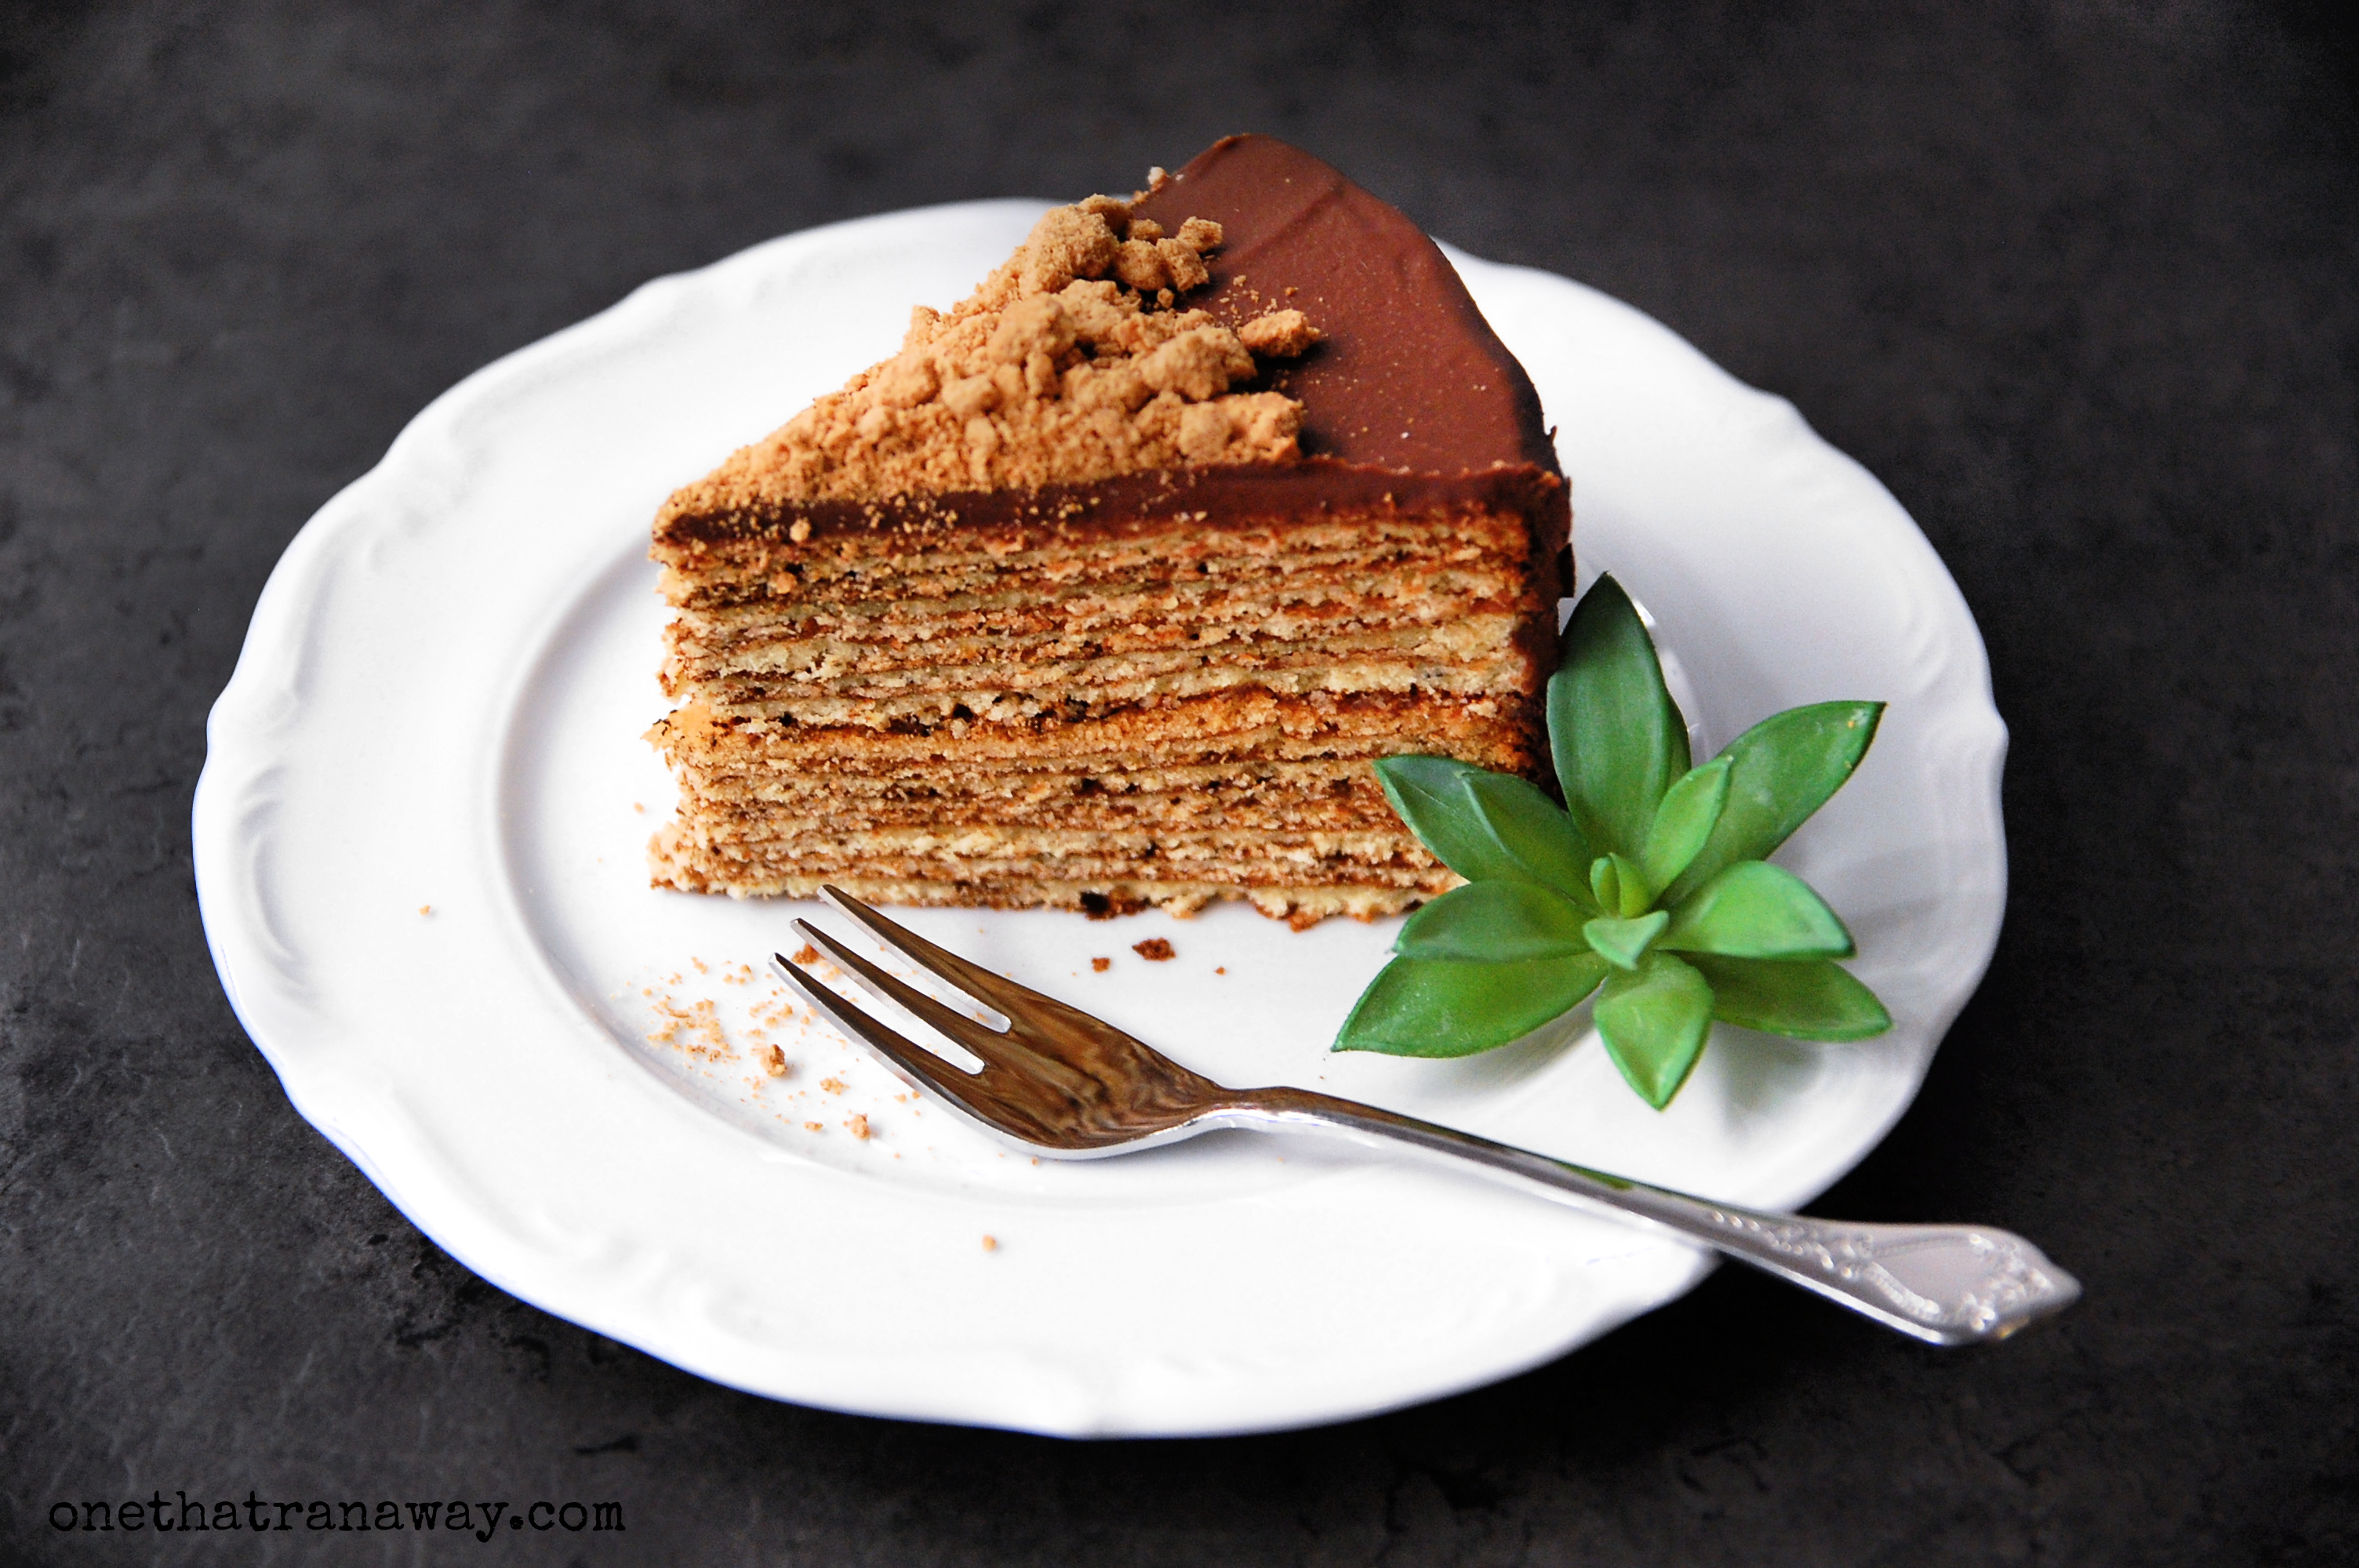 slice of cake with succulent